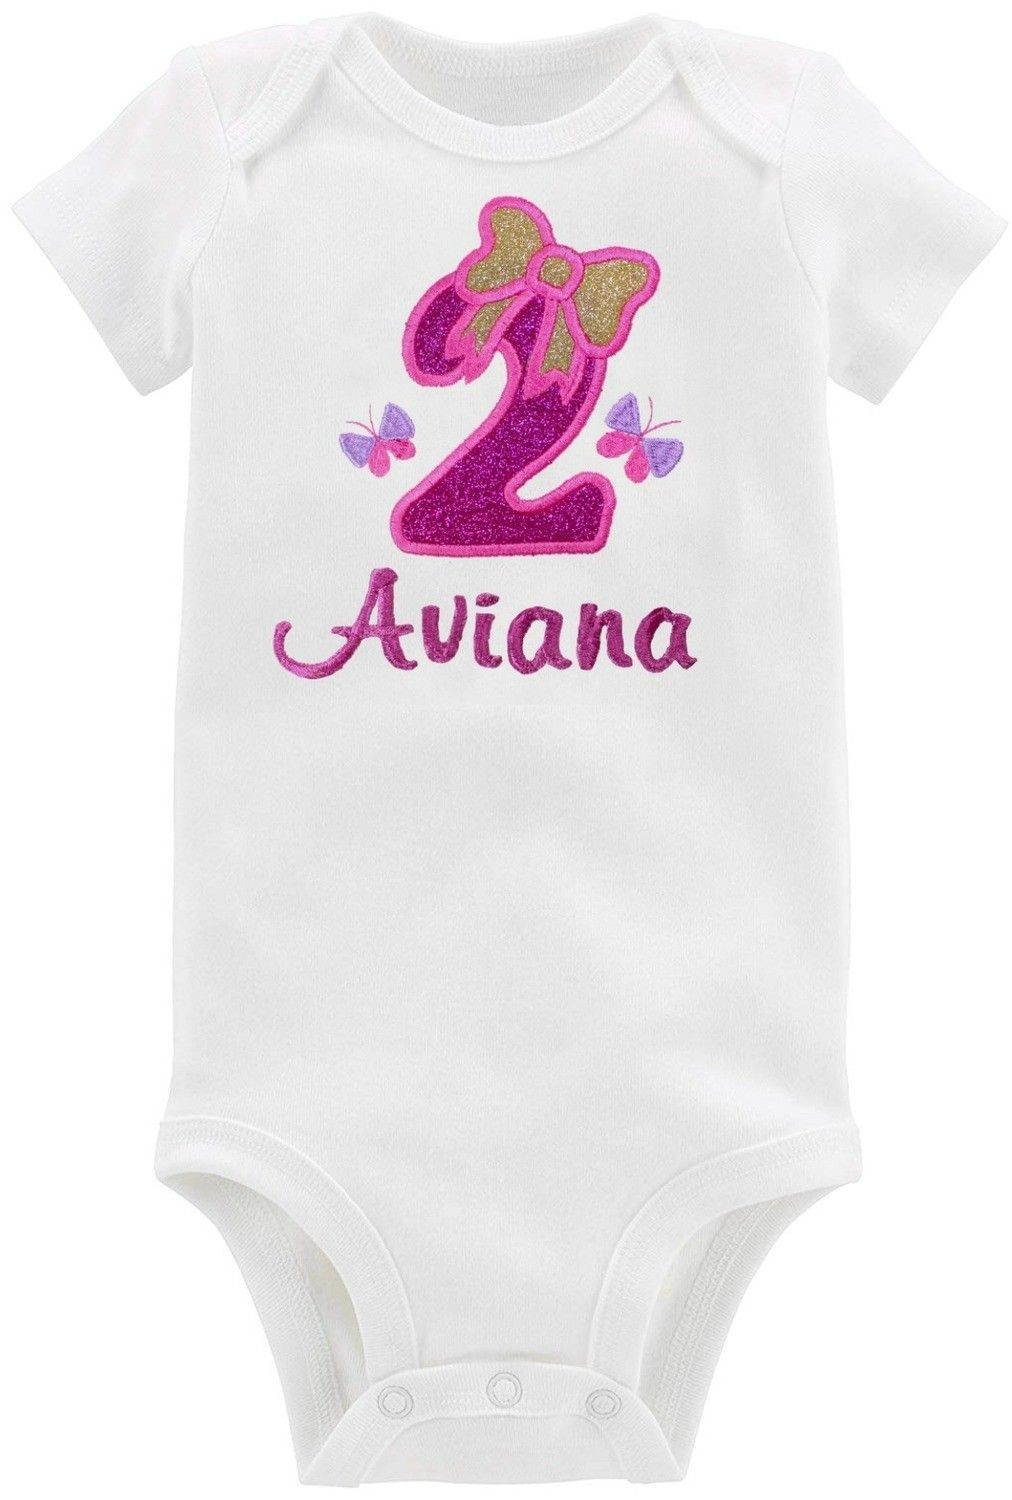 Fantasy Kids Designs Embroidered Handmade Girls My Second Birthday Personalized Sparkling Bow T-Shirt or Onesie